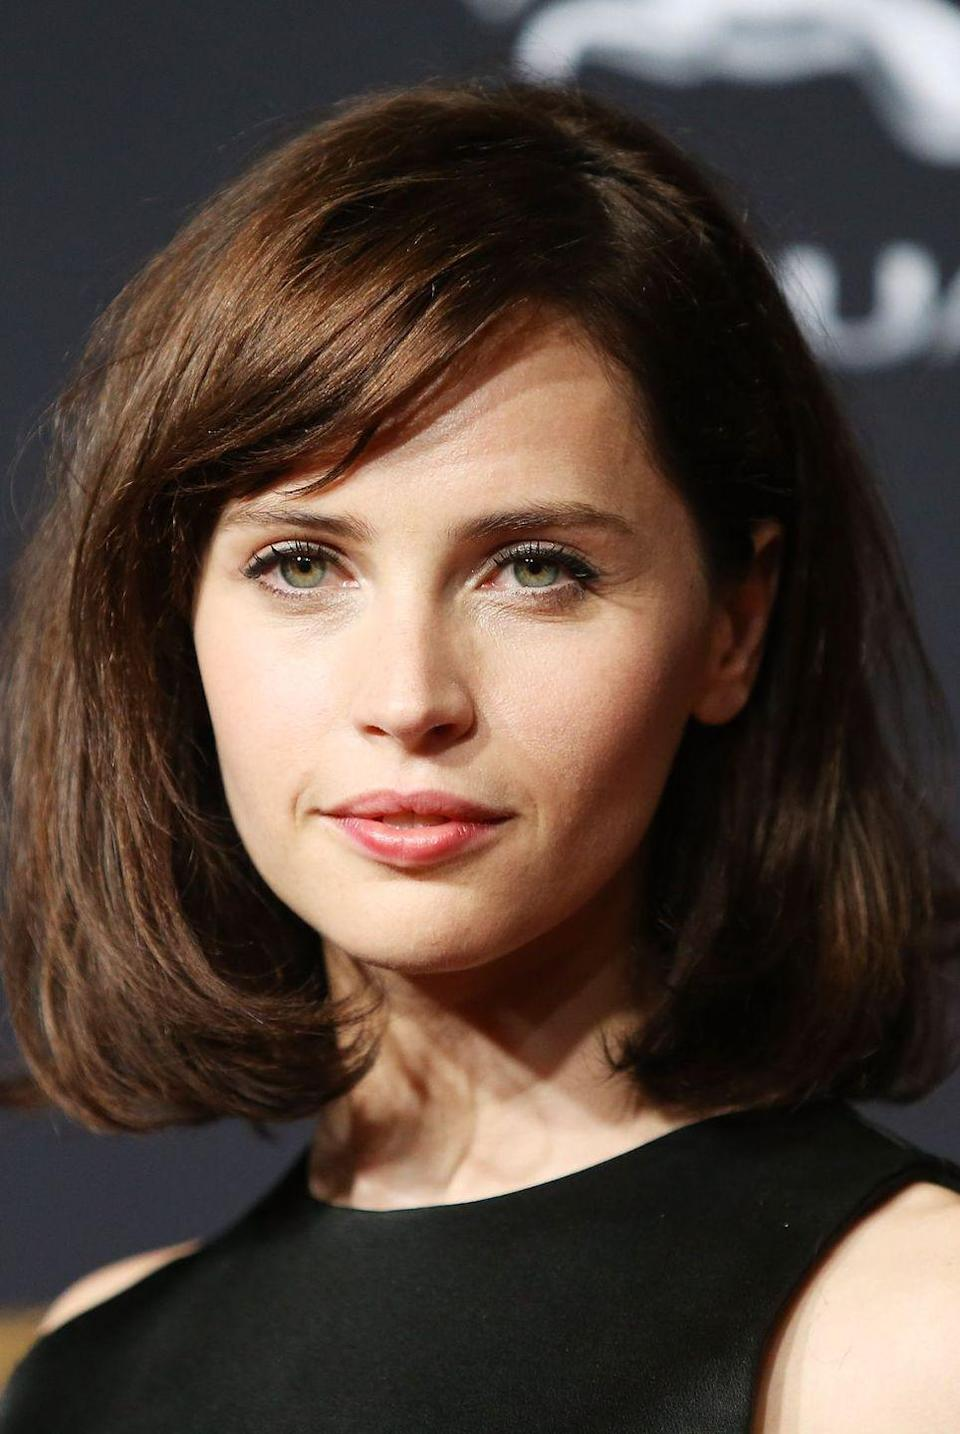 "<p>Felicity Jones, who you might know as Jyn from <em>Rogue One</em>, <a href=""https://www.mirror.co.uk/tv/tv-news/felicity-jones-play-young-queen-3912734"" rel=""nofollow noopener"" target=""_blank"" data-ylk=""slk:reportedly auditioned"" class=""link rapid-noclick-resp"">reportedly auditioned</a> to play Queen Elizabeth in the series, according to the <em>Mirror</em>.</p>"